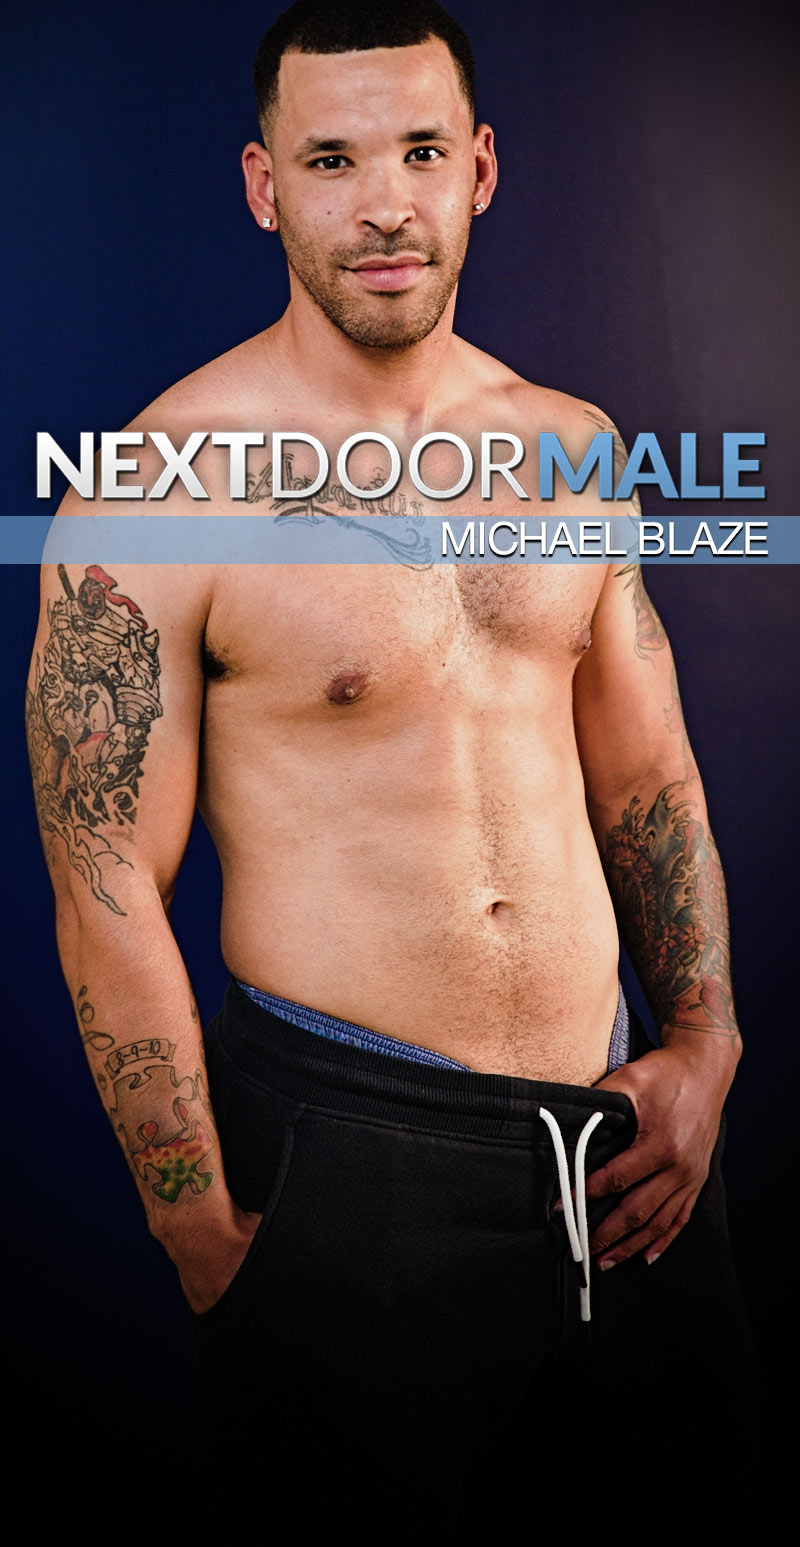 Michael Blaze at Next Door Male